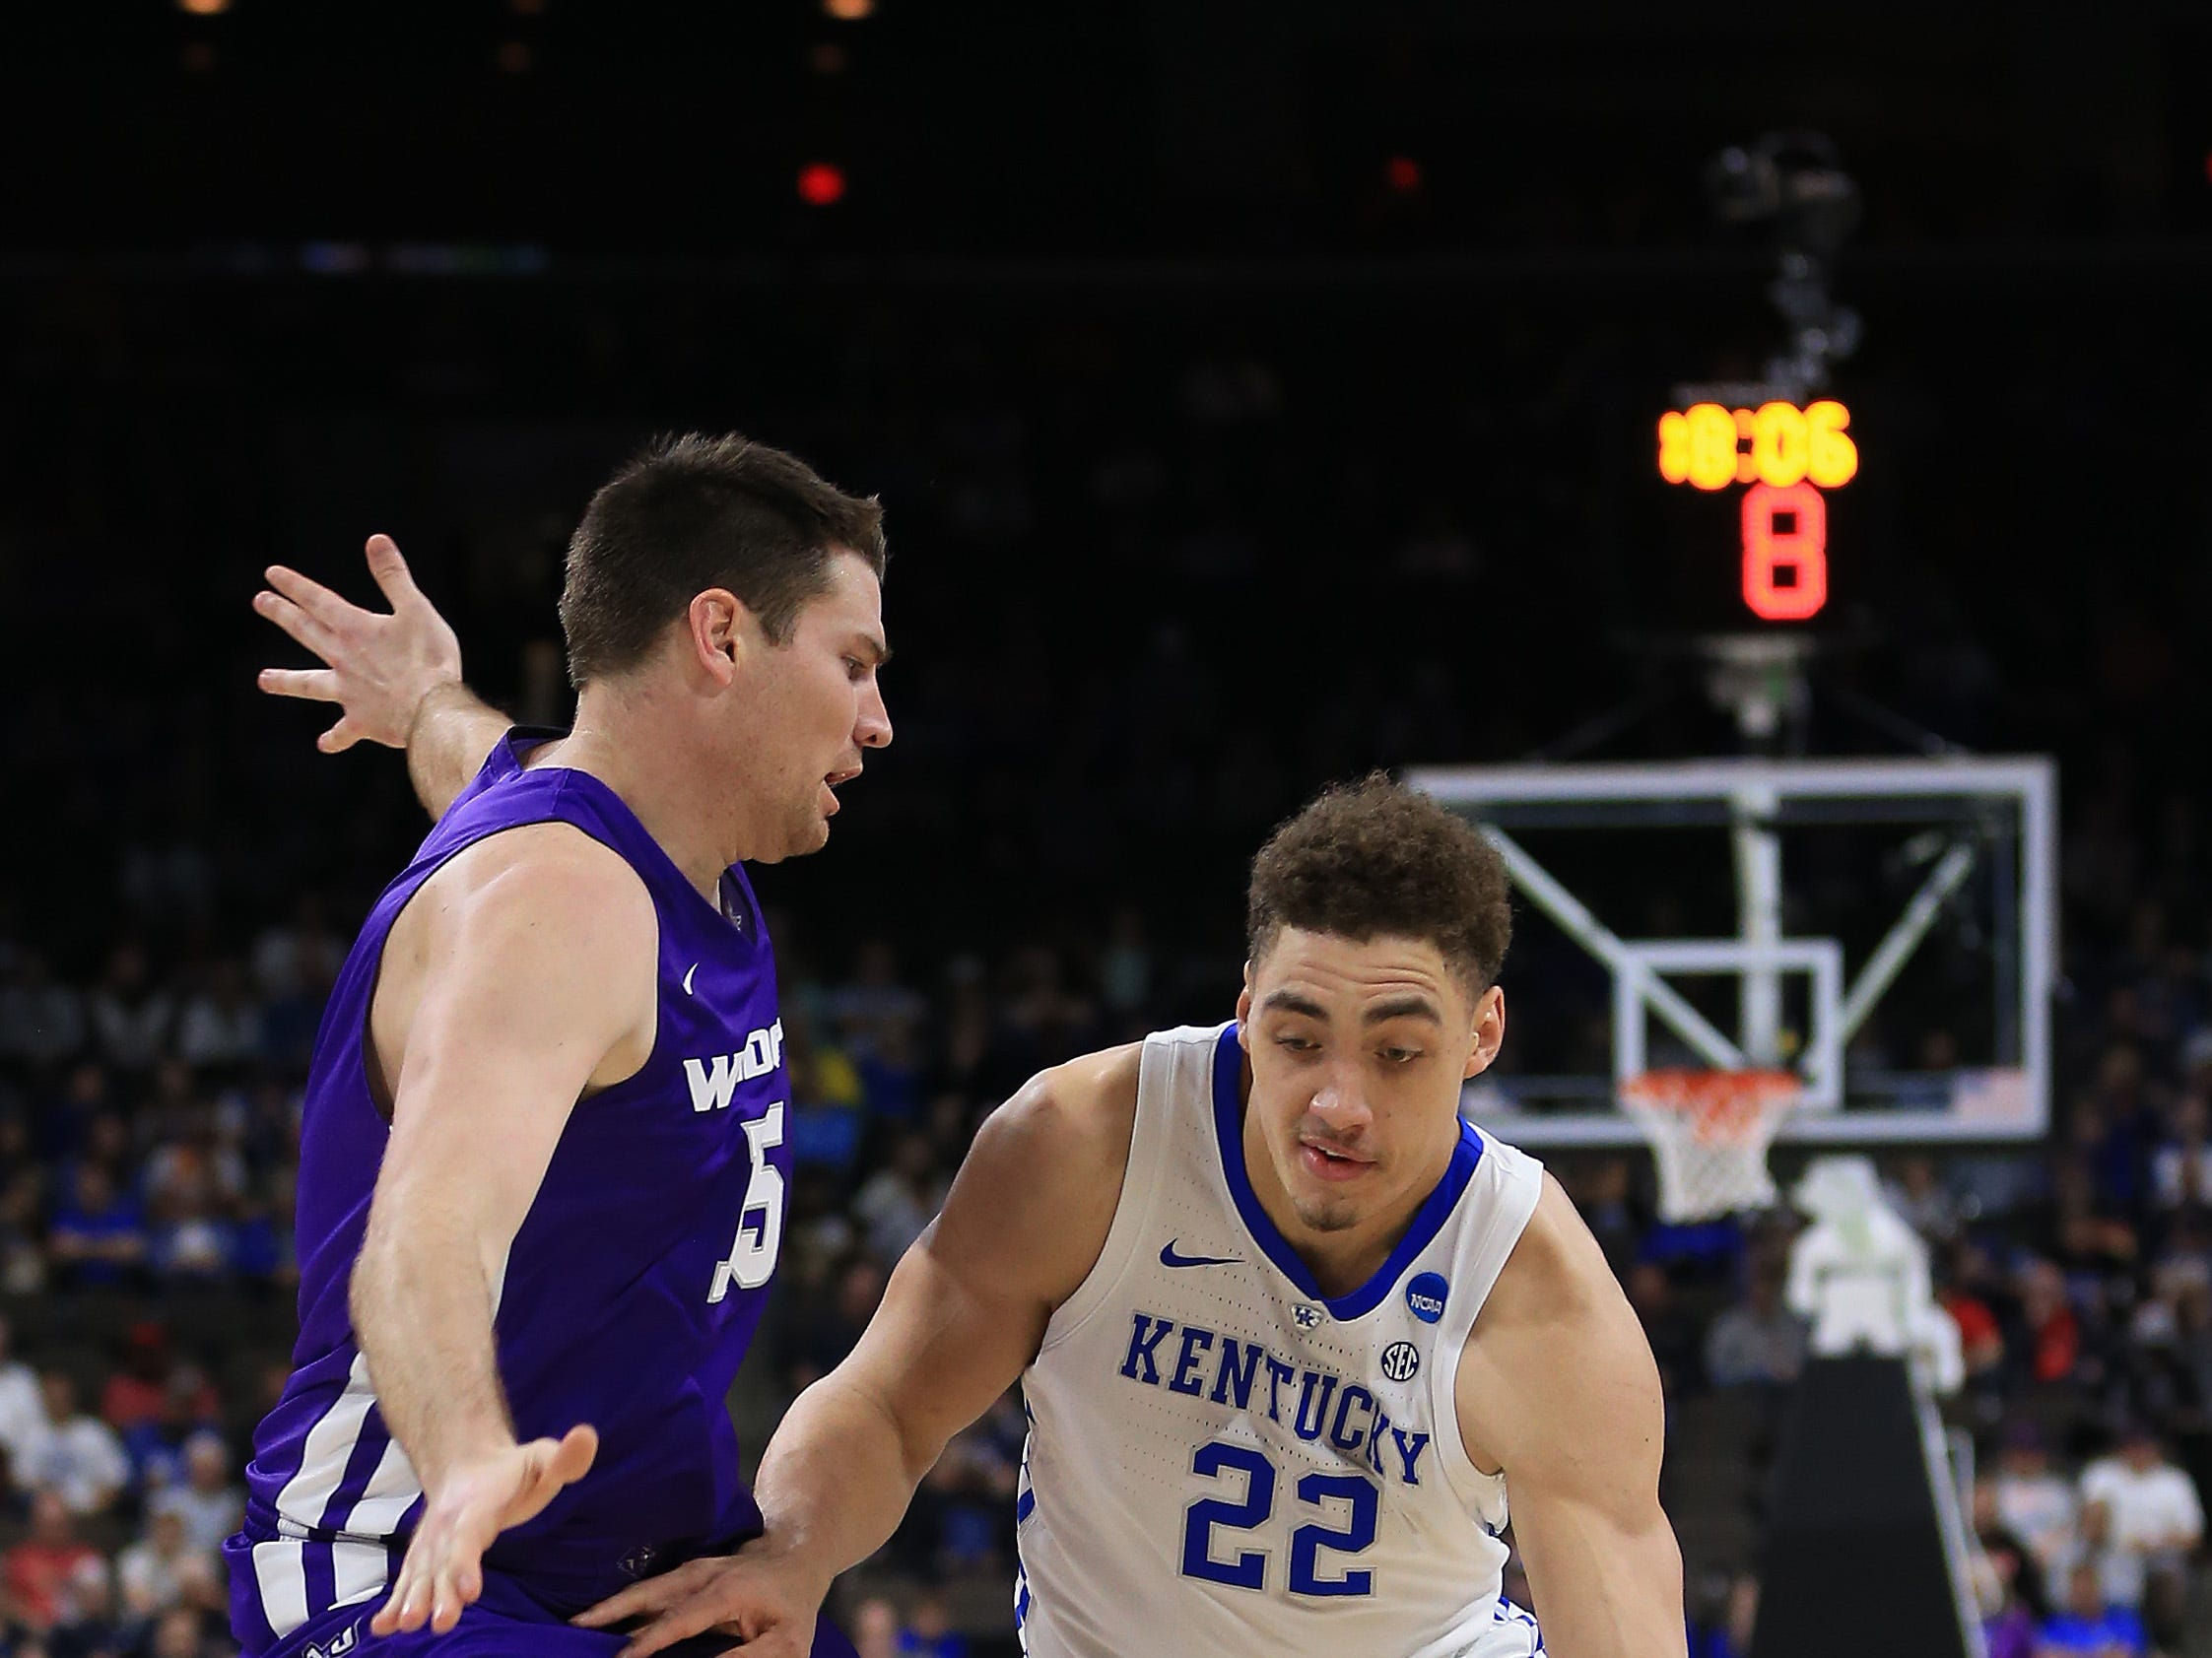 Mar 21, 2019; Jacksonville, FL, USA; Kentucky Wildcats forward Reid Travis (22) dribbles the ball around Abilene Christian Wildcats forward Hayden Farquhar (15) during the first quarter in the first round of the 2019 NCAA Tournament at Jacksonville Veterans Memorial Arena. Mandatory Credit: Matt Stamey-USA TODAY Sports